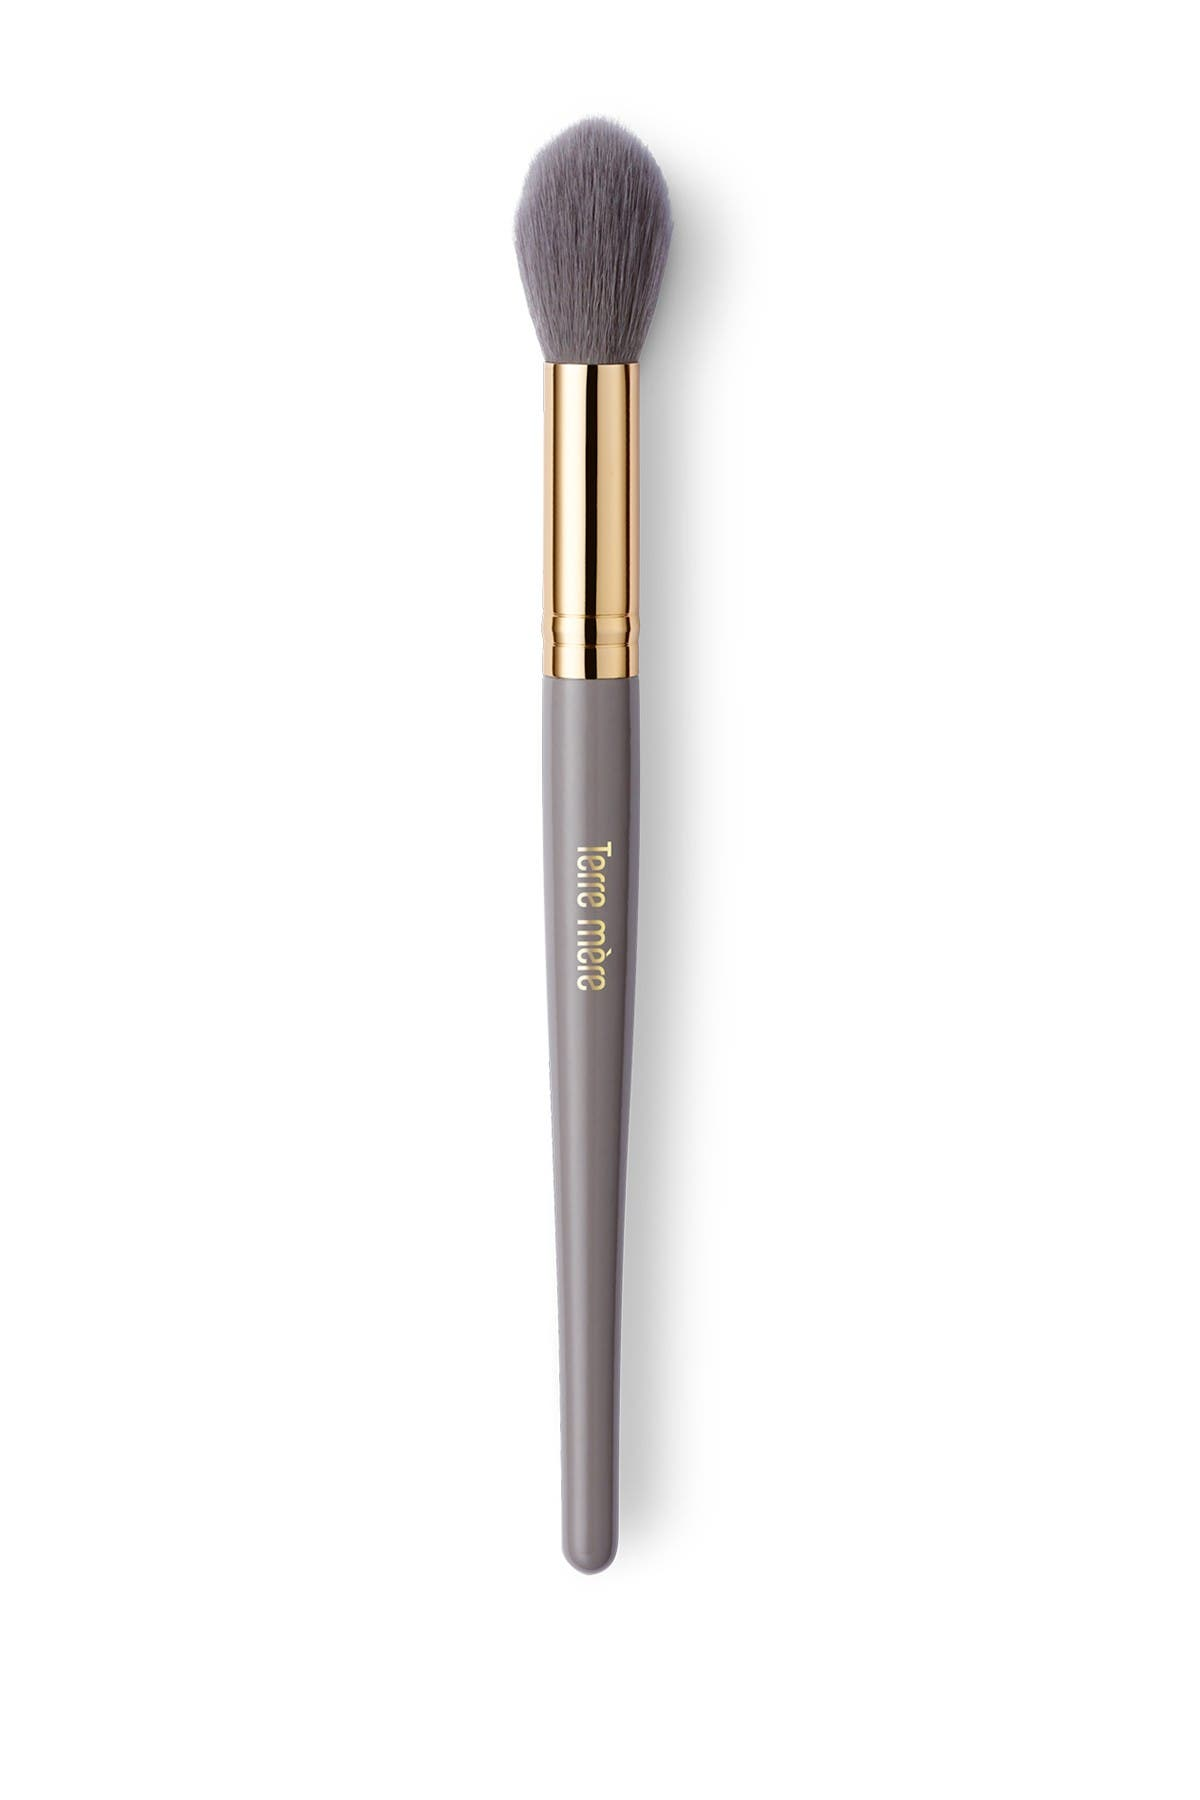 Image of Terre Mere Tapered Contour Brush